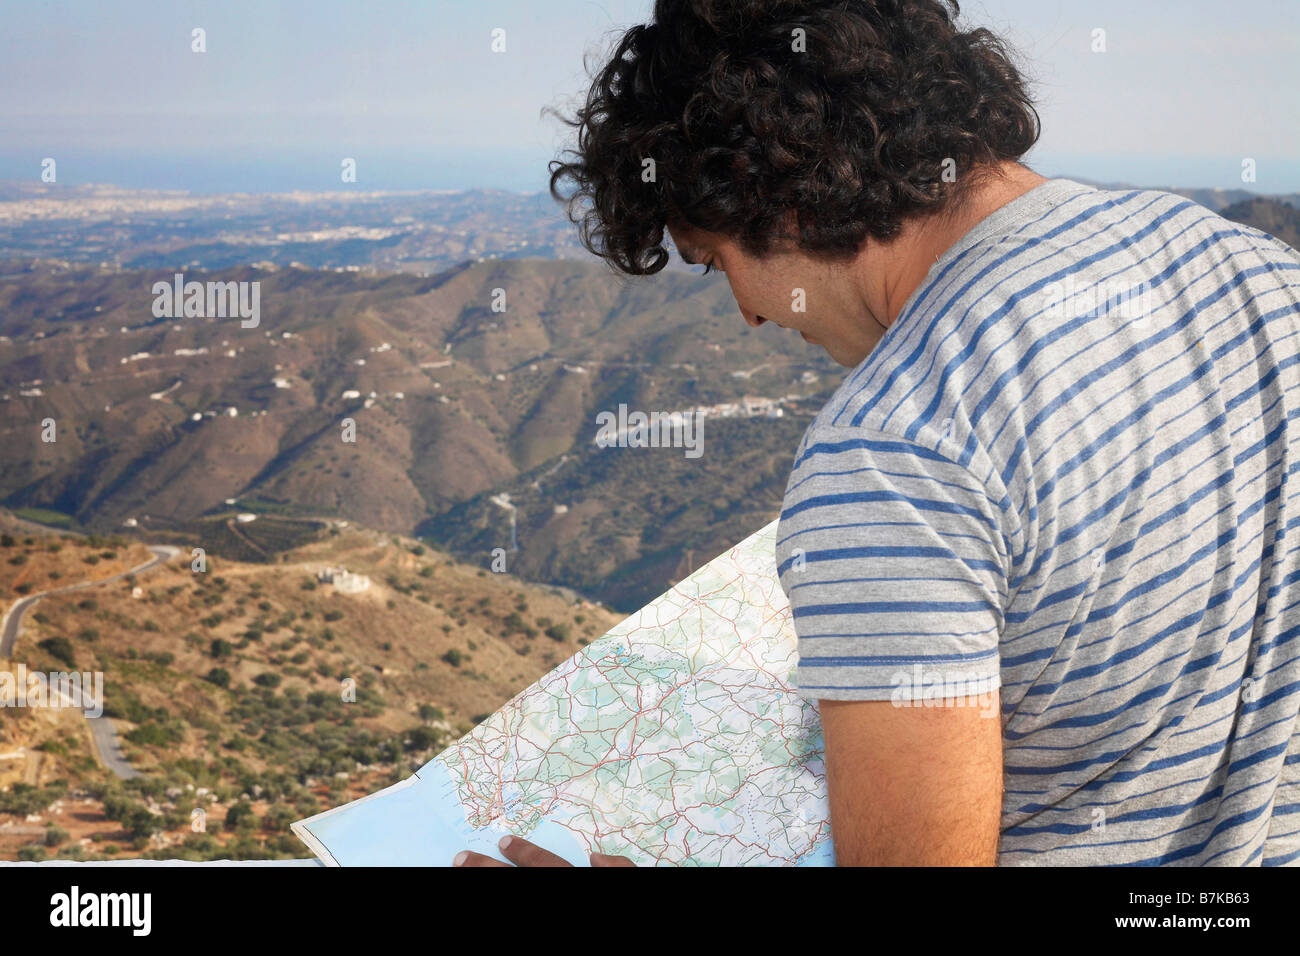 Man looking at a map - Stock Image